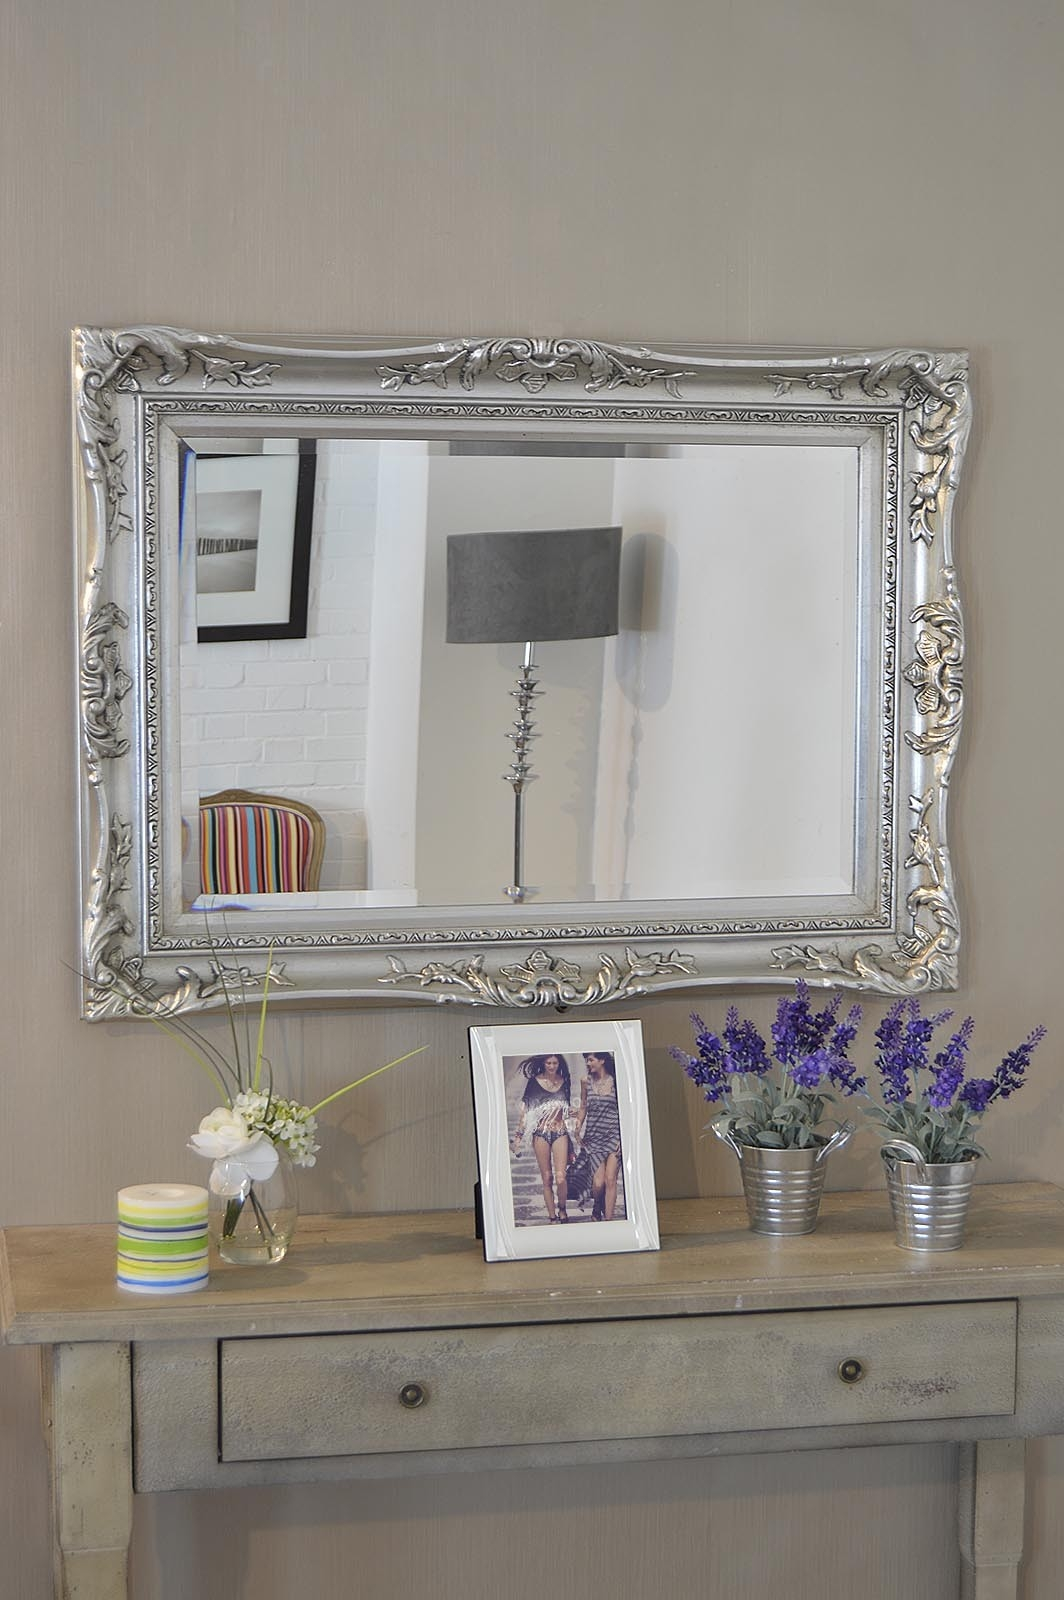 Classic Impression On Antique Wall Mirrors Vwho With Regard To Large Ornate Wall Mirror (Image 3 of 15)